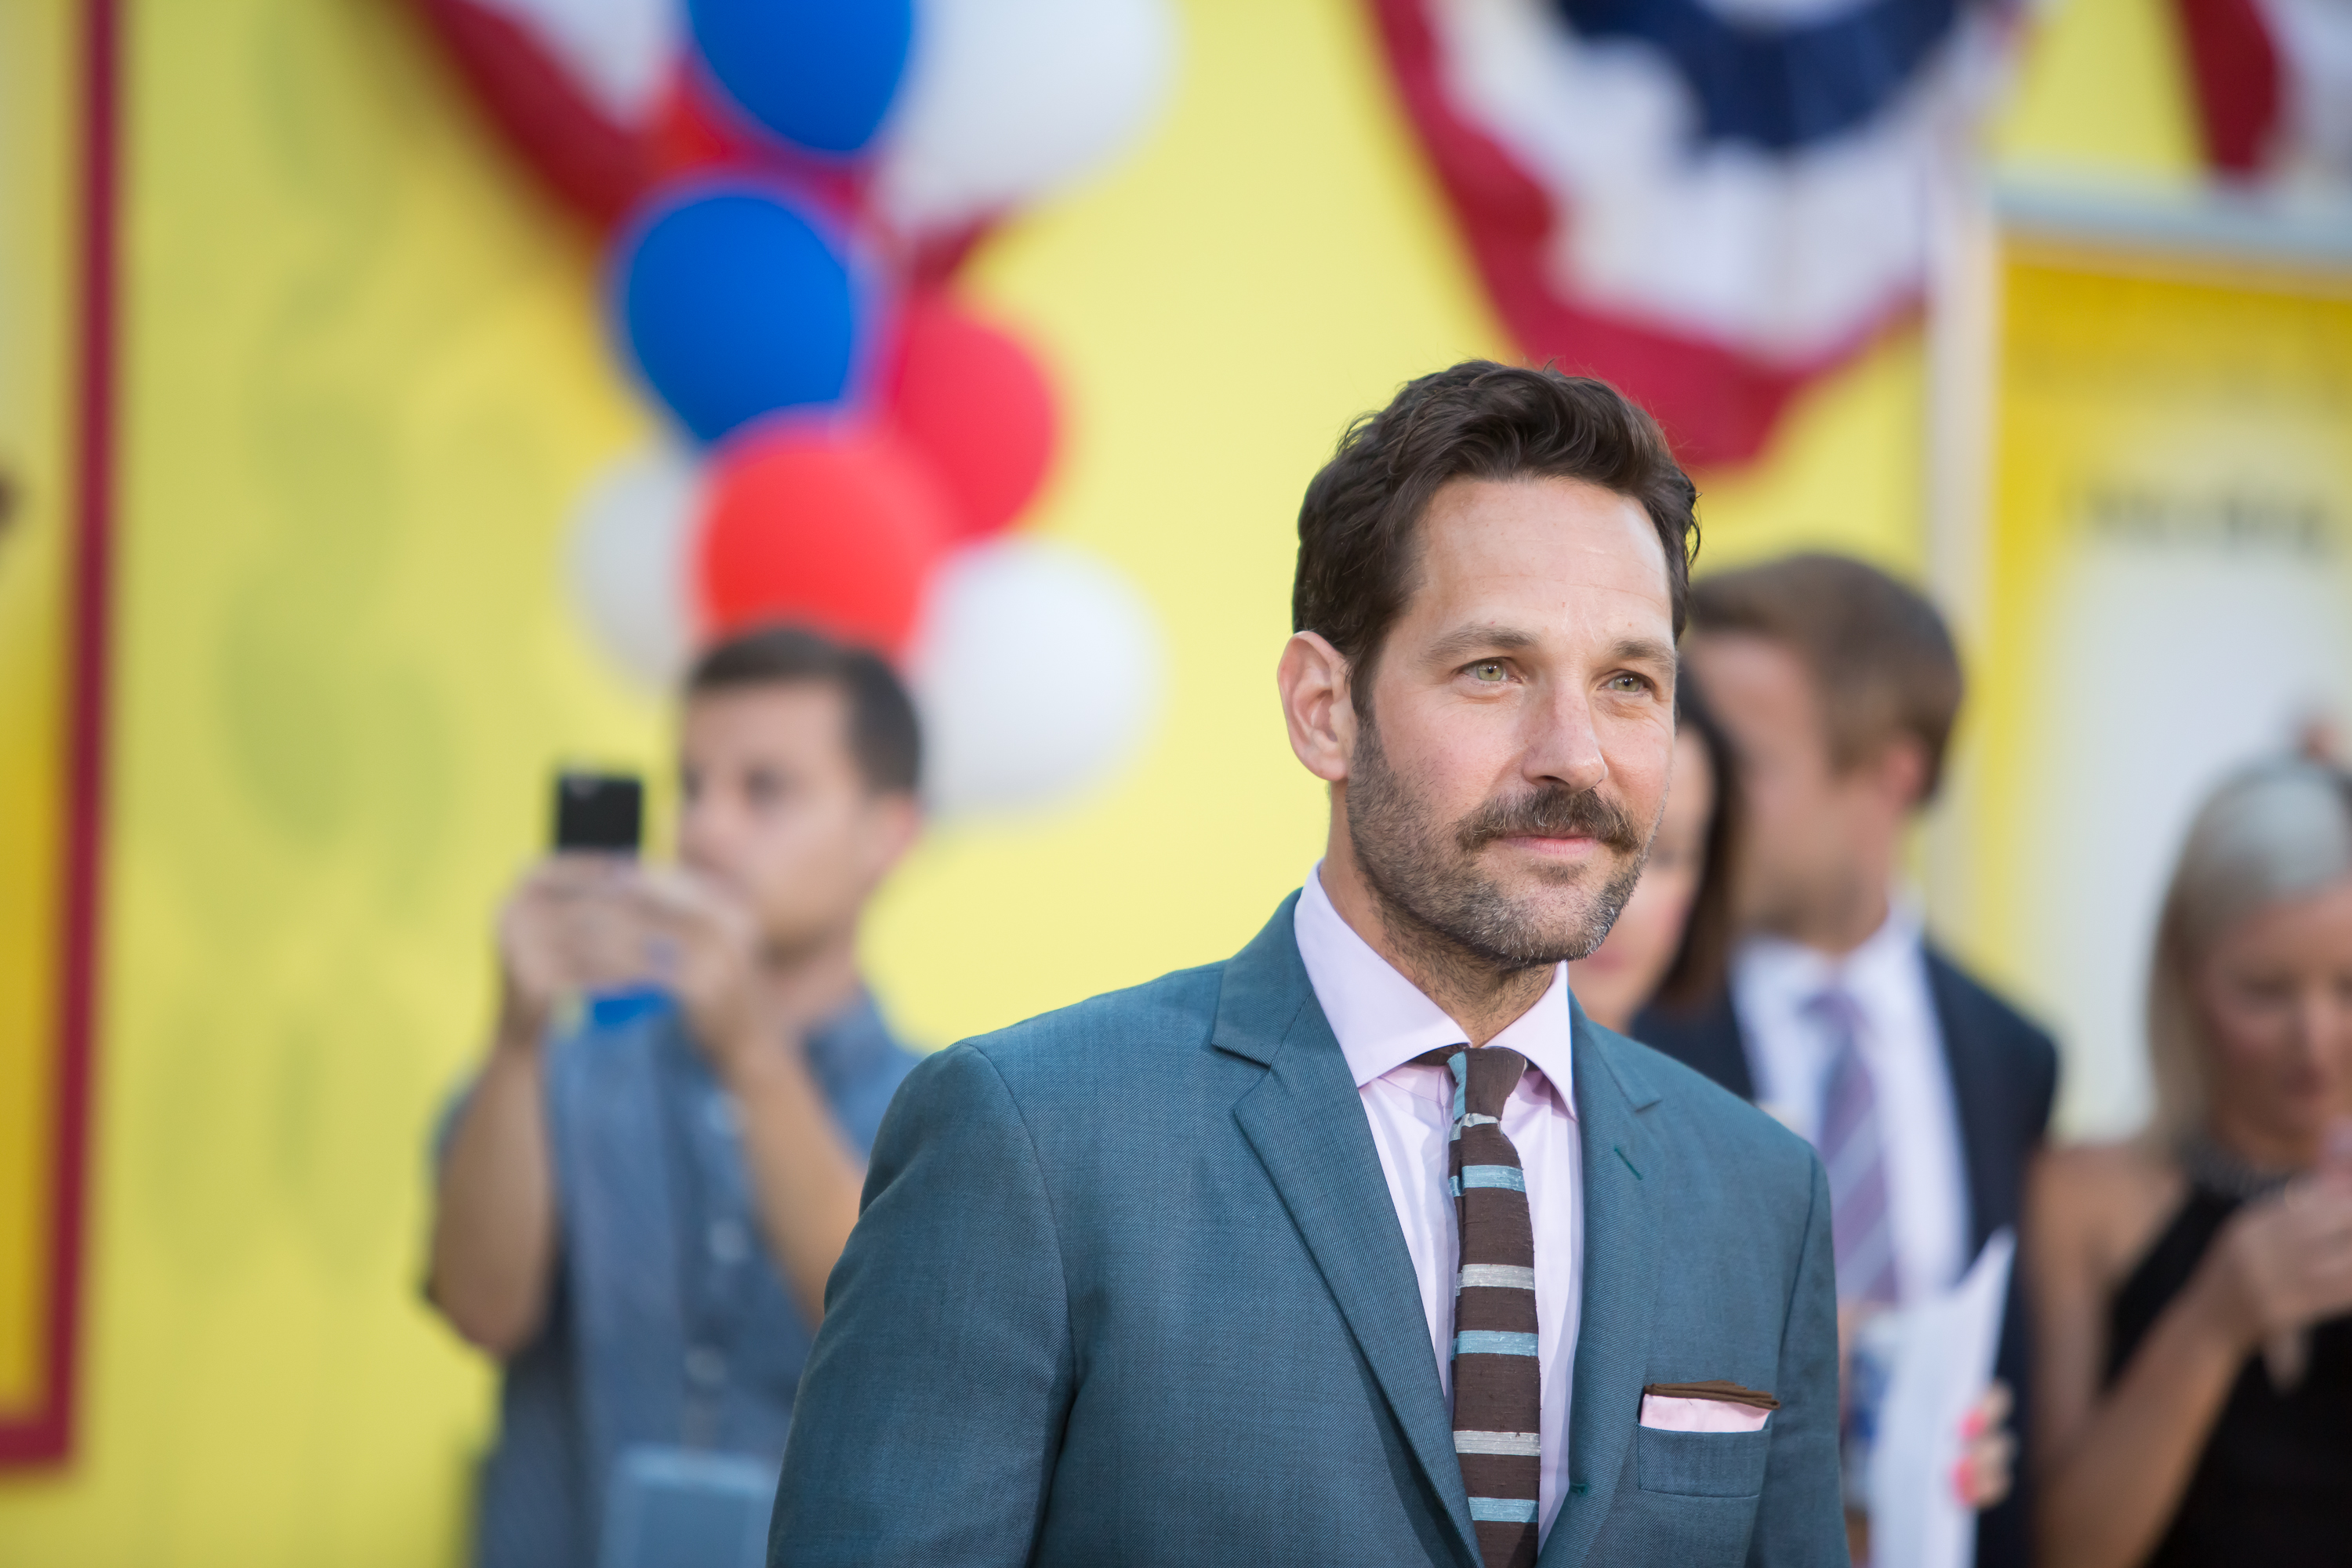 Paul Rudd attending the Los Angeles premiere of Sony's 'Sausage Party' at the Regency Village Theatre in Westwood, California  Featuring: Paul Rudd Where: Los Angeles, California, United States When: 09 Aug 2016 Credit: Michael Boardman/WENN.com